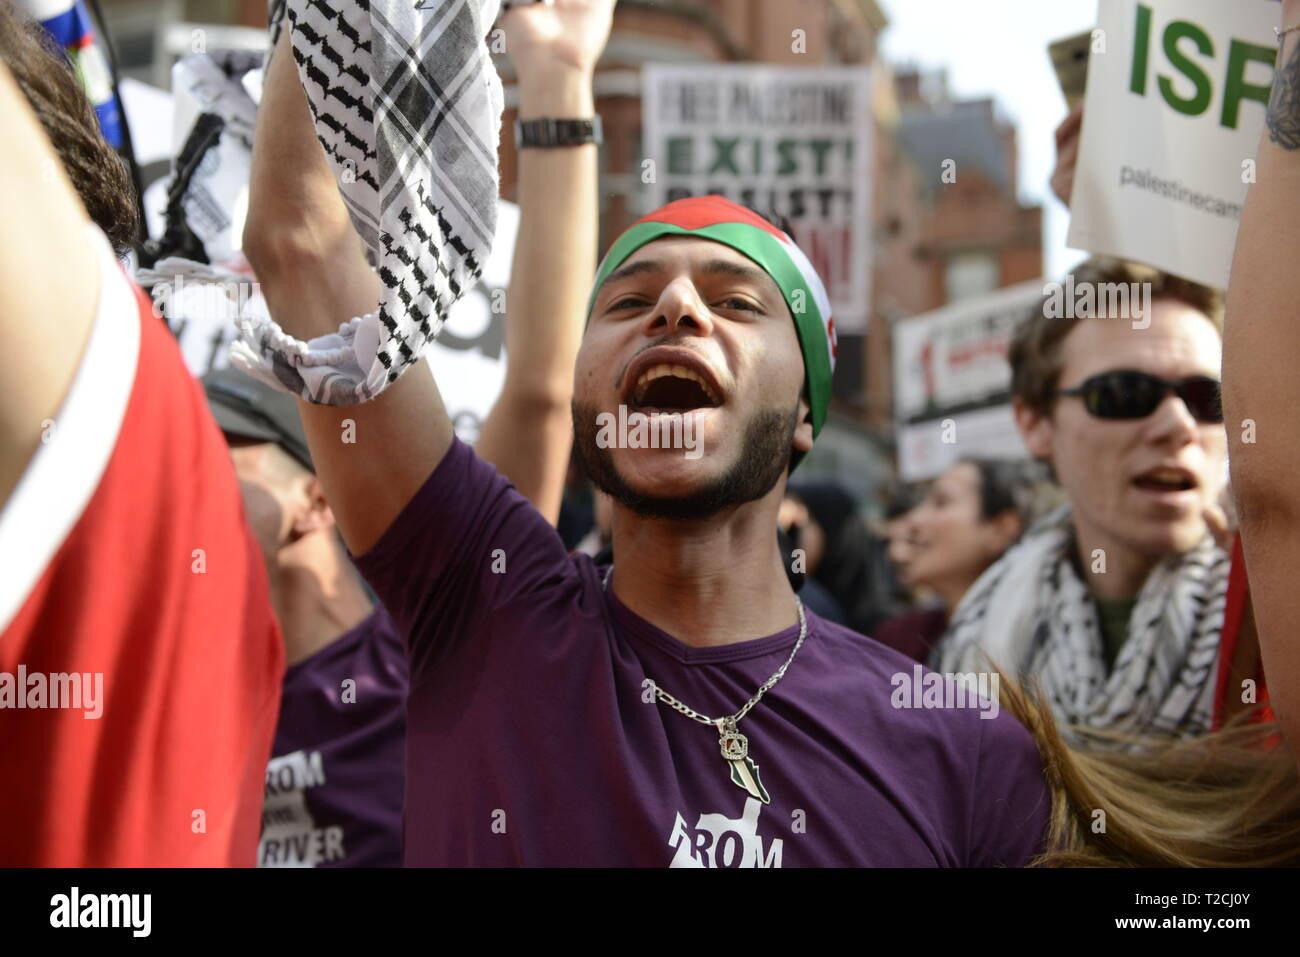 London, Greater London, UK. 30th Mar, 2019. A protester is seen chanting slogans during the Exist, Resist, Return Rally for Palestine in London.People gather outside the Israeli embassy in London to demonstrate against the Israeli government, and to demand respect for Palestinians' fundamental rights to exist, resist and return. Palestinians are calling for global protests to support their right to come back to their villages. Rally was organized by Palestine Solidarity Campaign, Stop the War Coalition, Palestinian Forum in Britain, Friends of Al- Aqsa, and Muslim Association - Stock Image